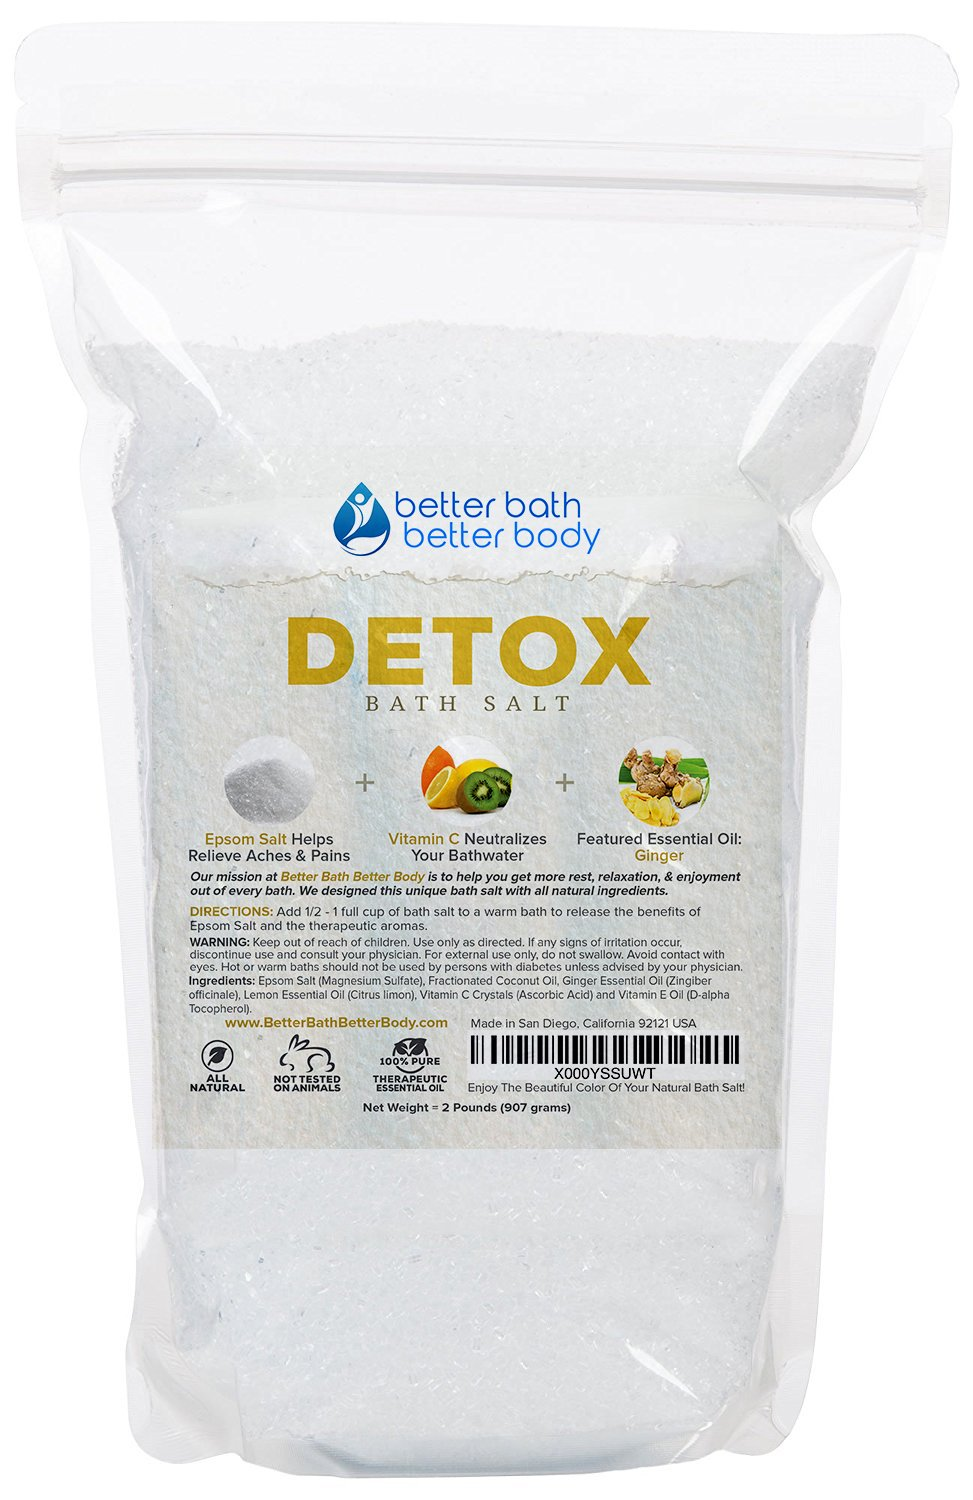 Detox Epsom Salt Bath Soak With Ginger & Lemon Essential Oils Plus Vitamin C - 100% All Natural No Perfumes No Dyes - Detoxify & Revitalize Your Body & Mind Naturally (2 Pounds) Better Bath Better Body